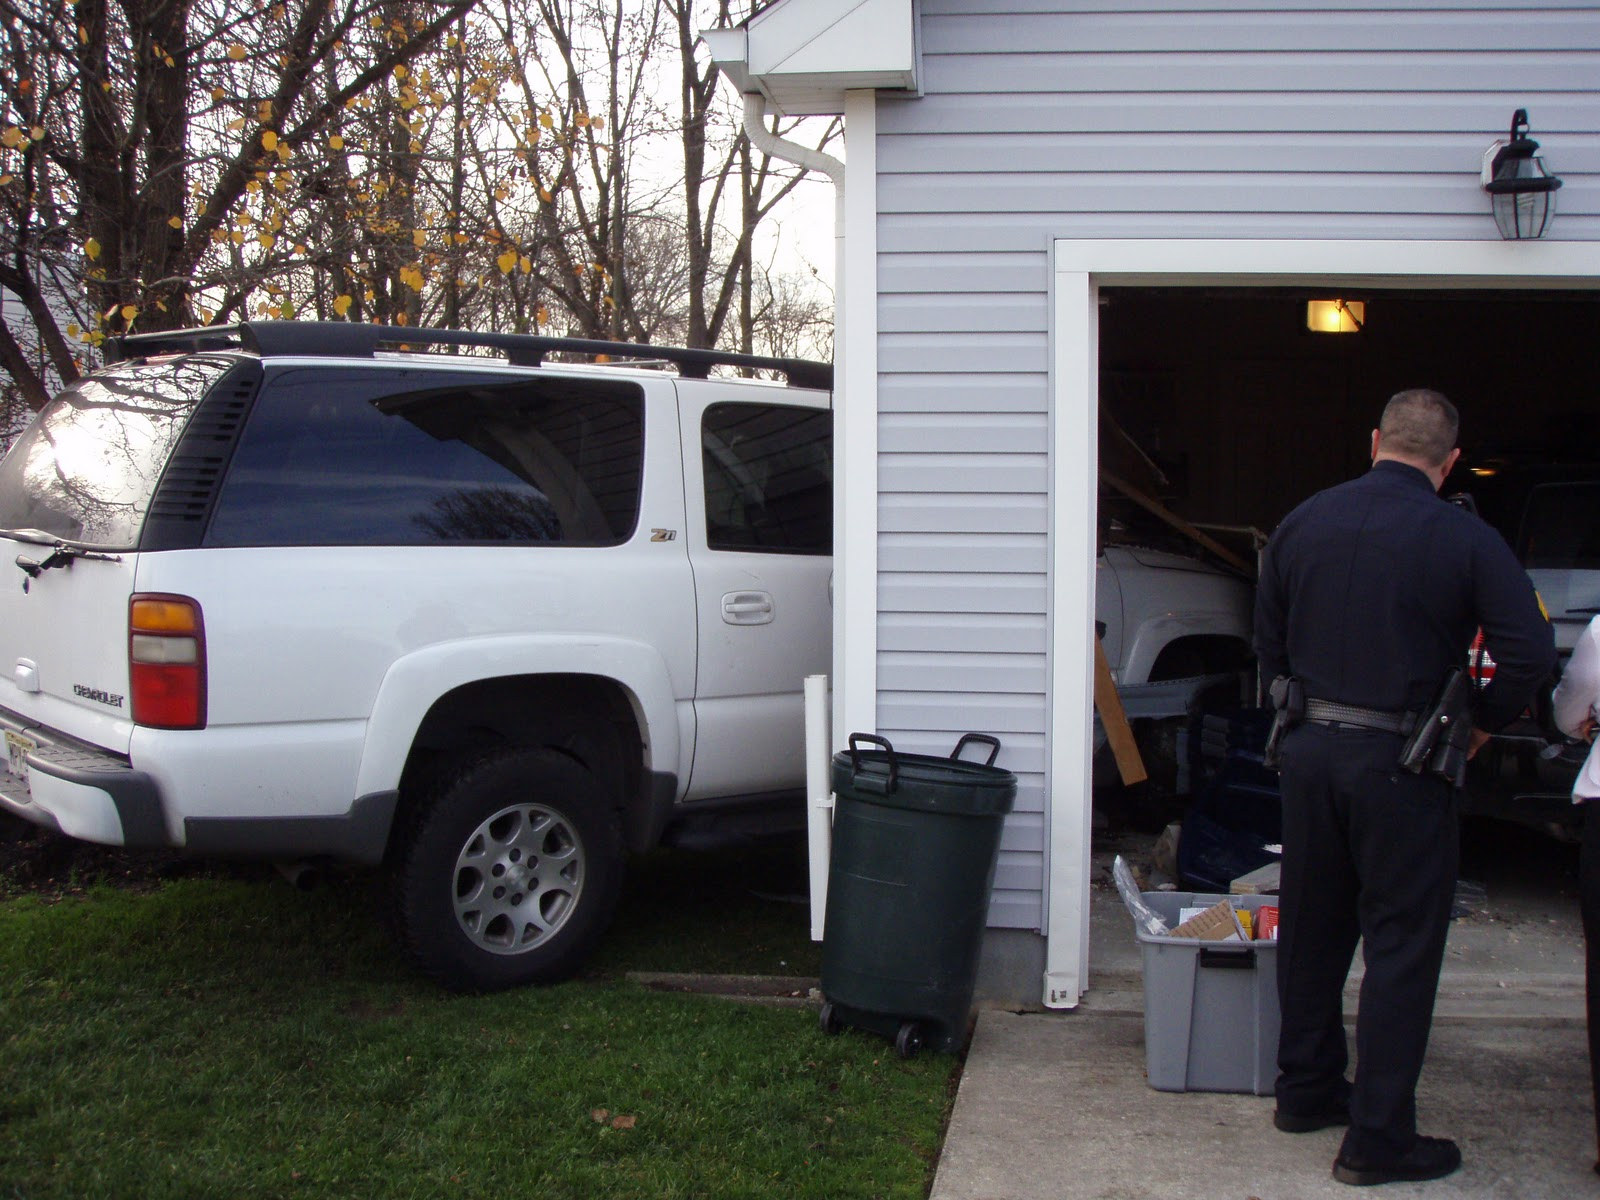 Cherry Hill Fd Vehicle Crashes Into Private Residence